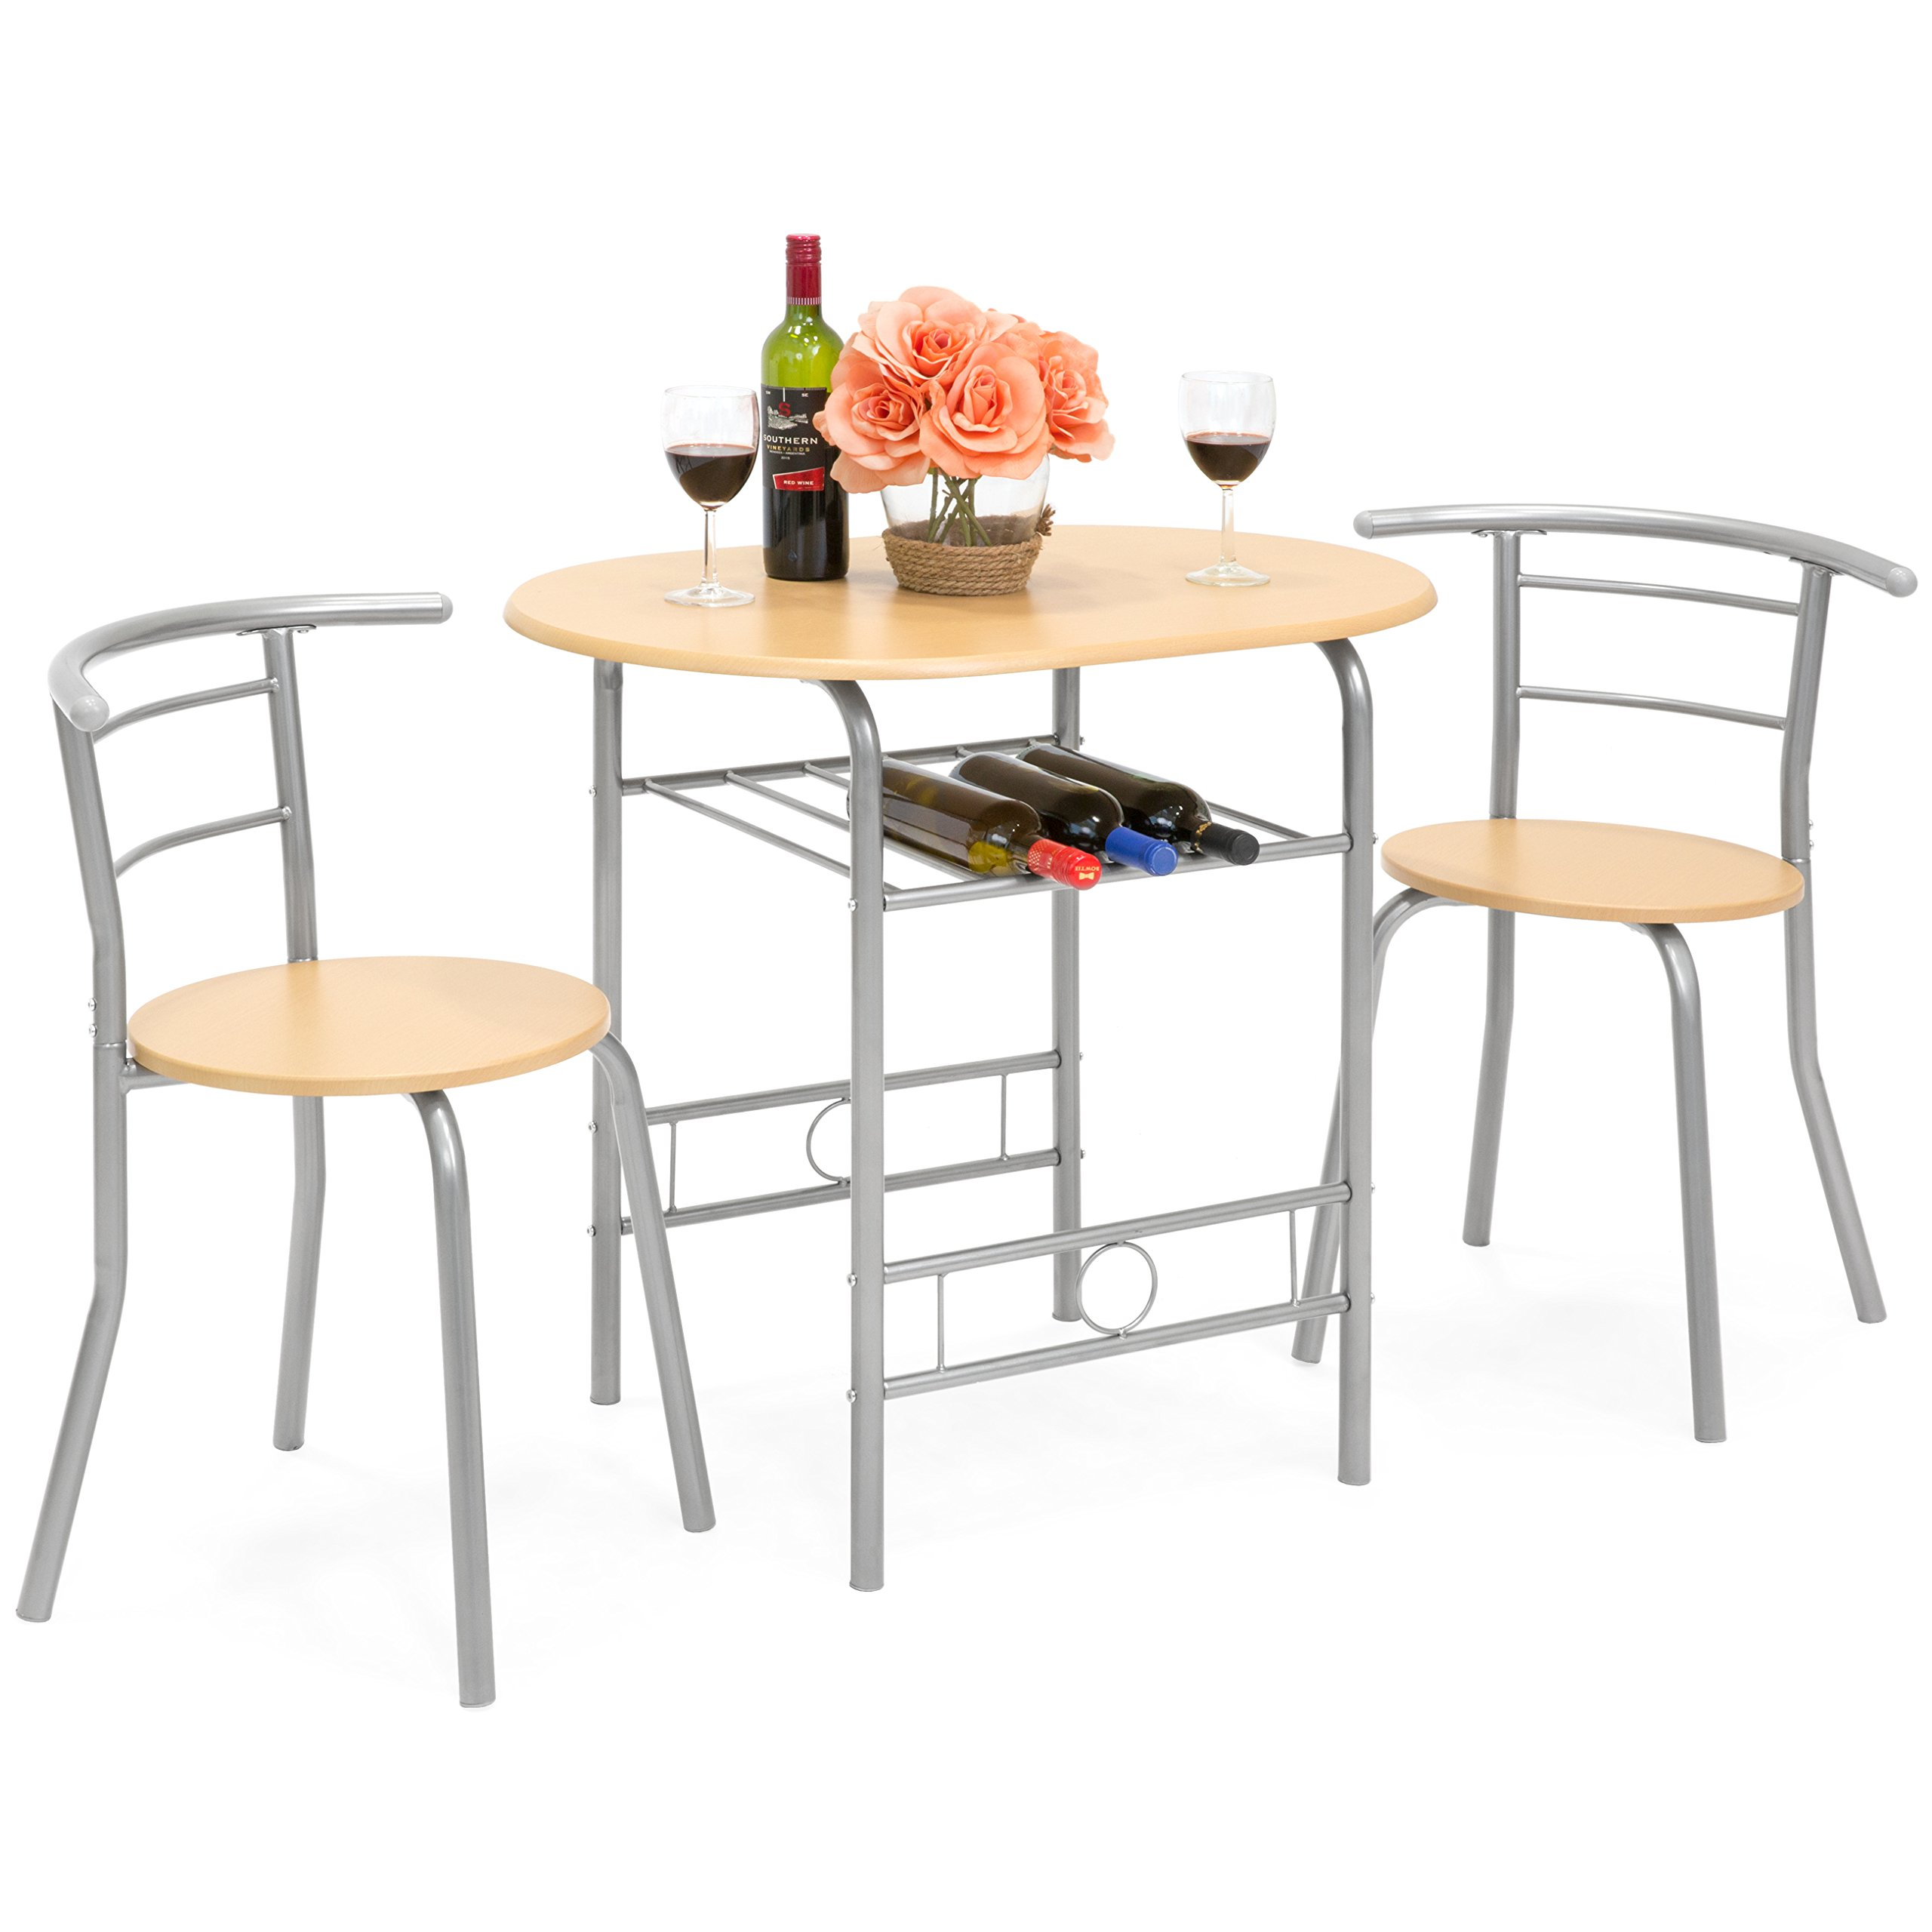 Best Choice Products 3-Piece Wooden Kitchen Dining Room Round Table and Chairs Set w/Built in Wine Rack - Natural by Best Choice Products